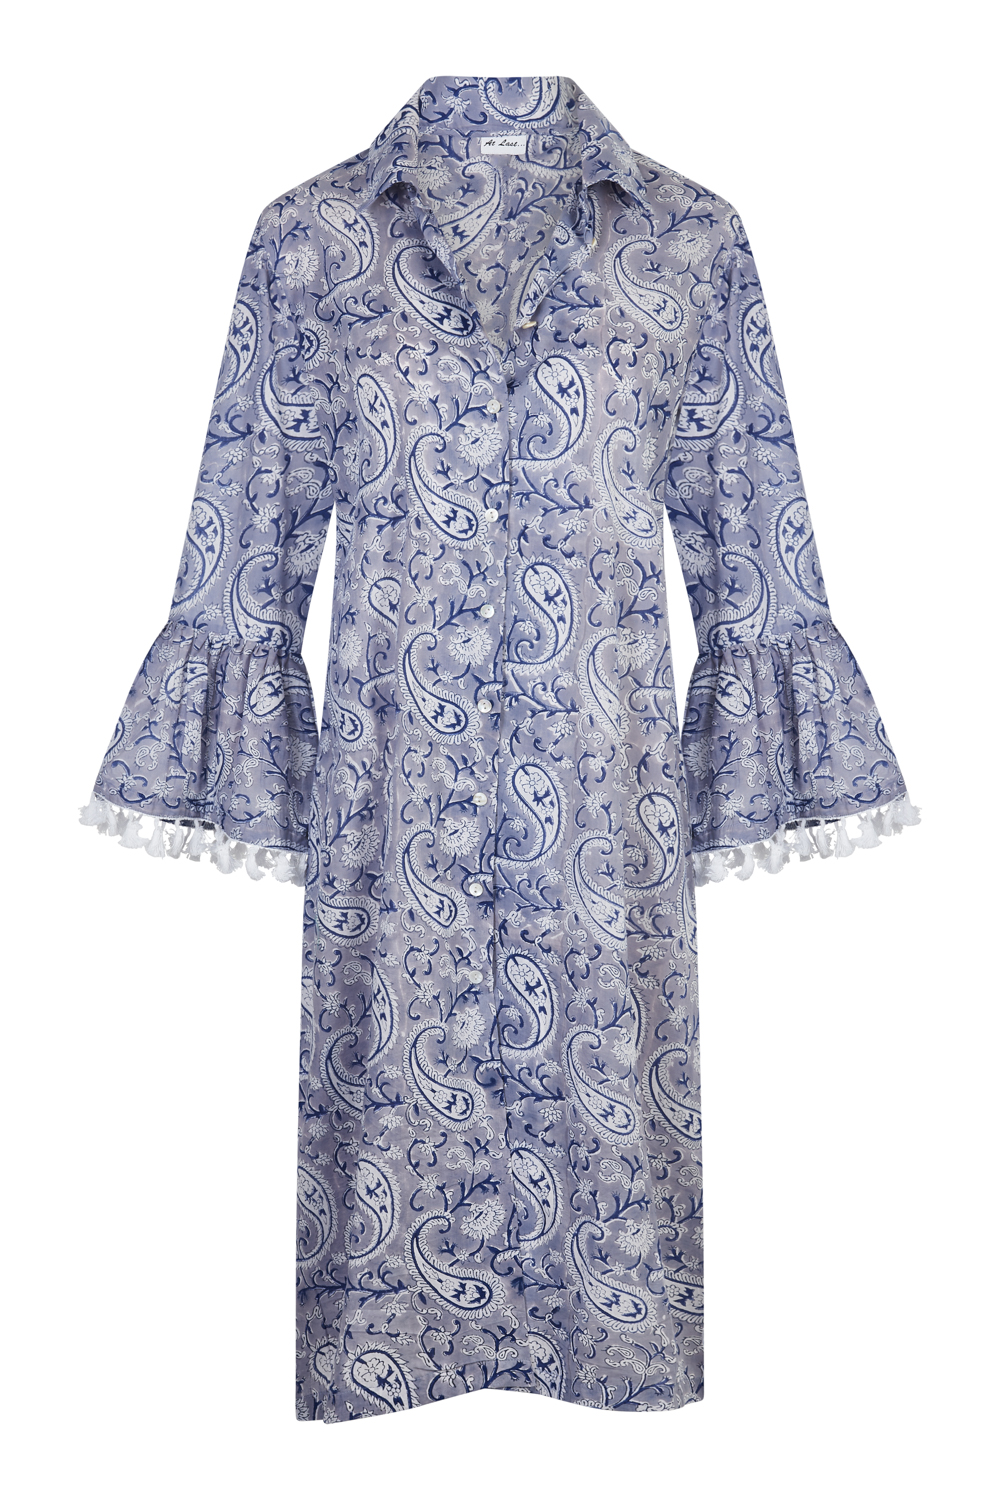 At Last Maxi Coat - Delft